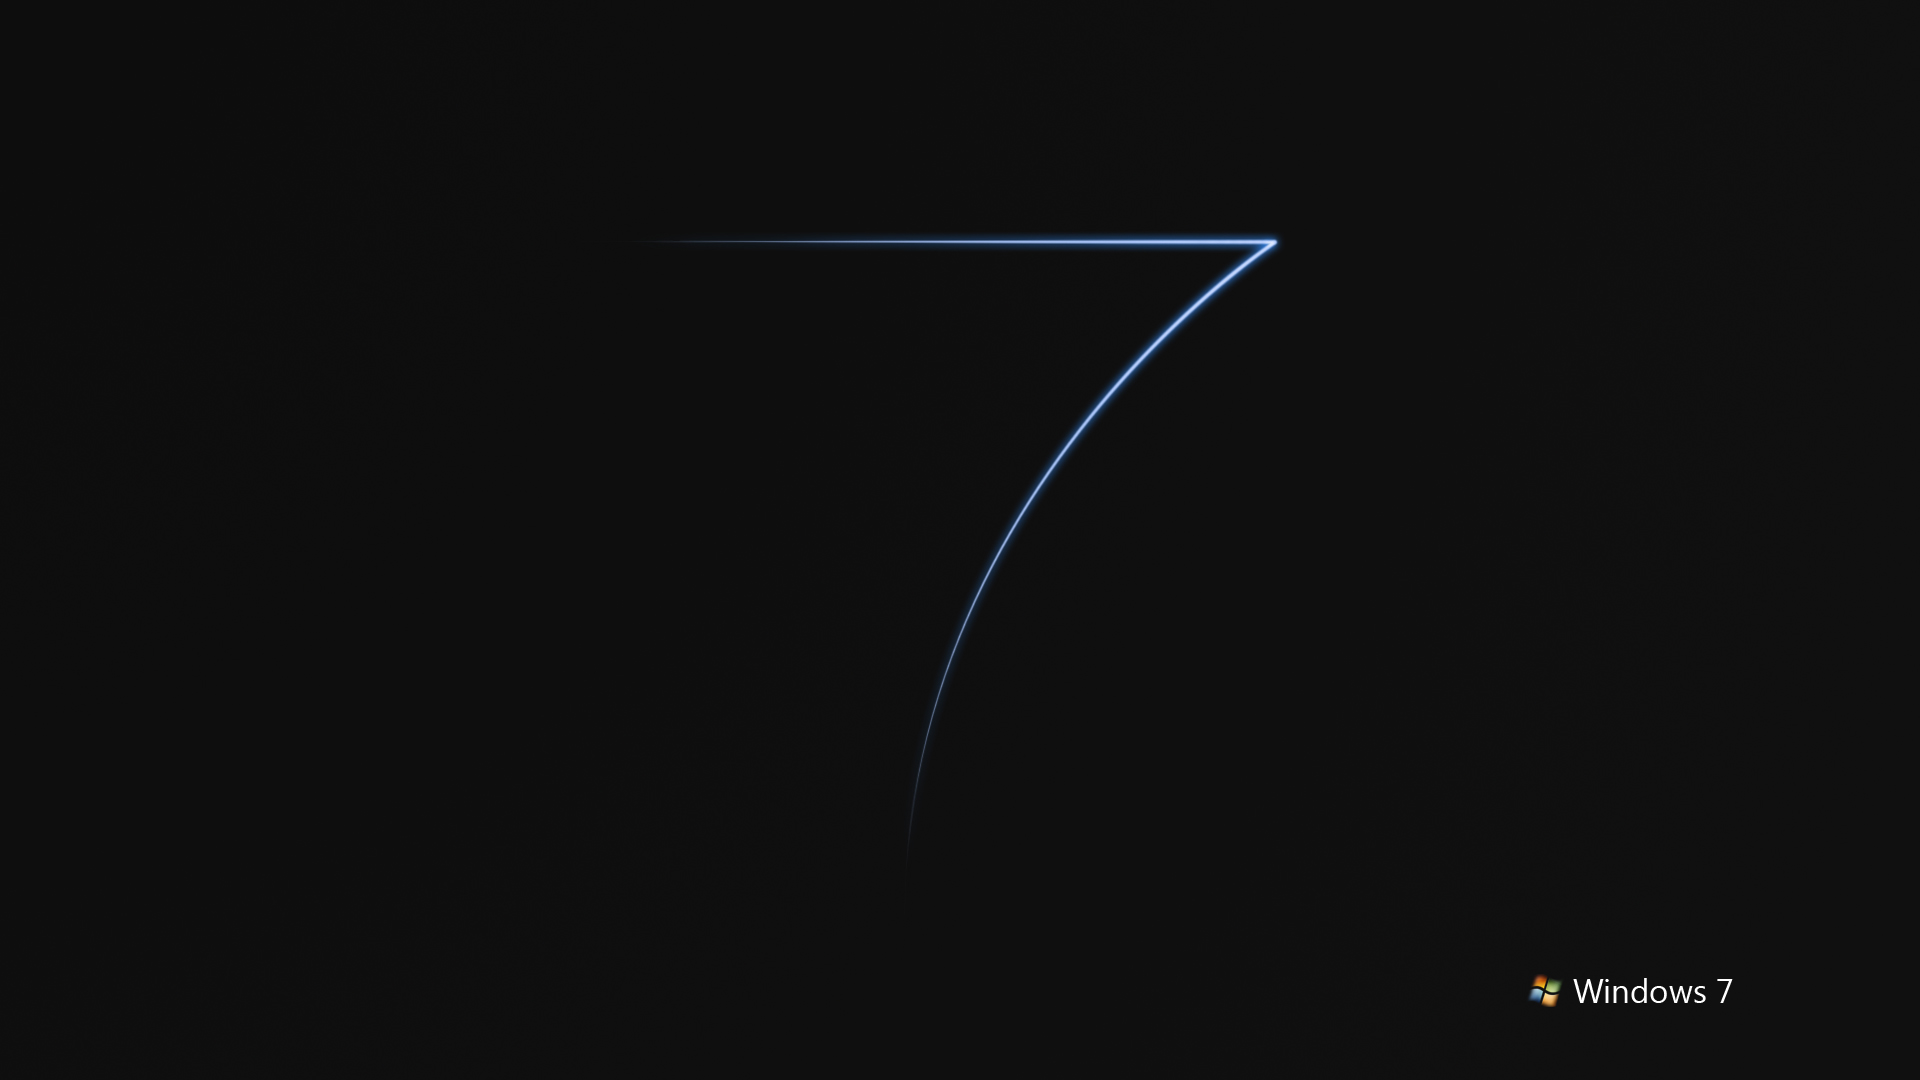 Black Windows 7 Official Download wallpaper brands and 1920x1080